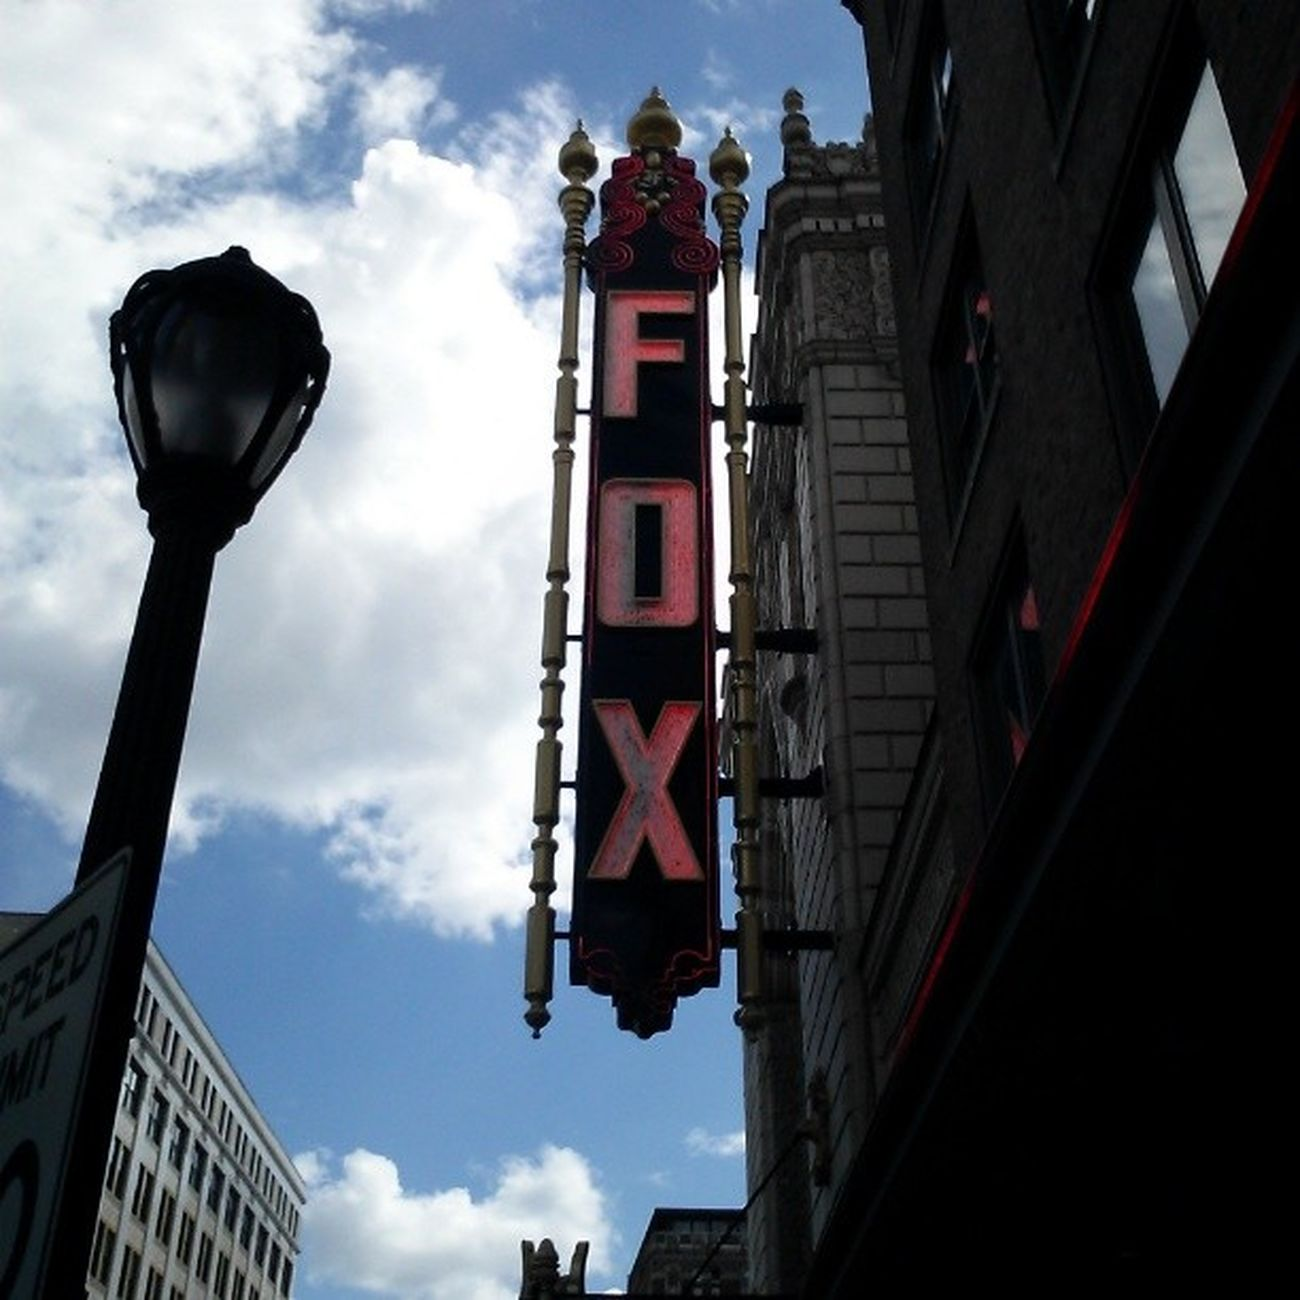 TheFabulousFoxTheater has some pretty Awesome shows this season!